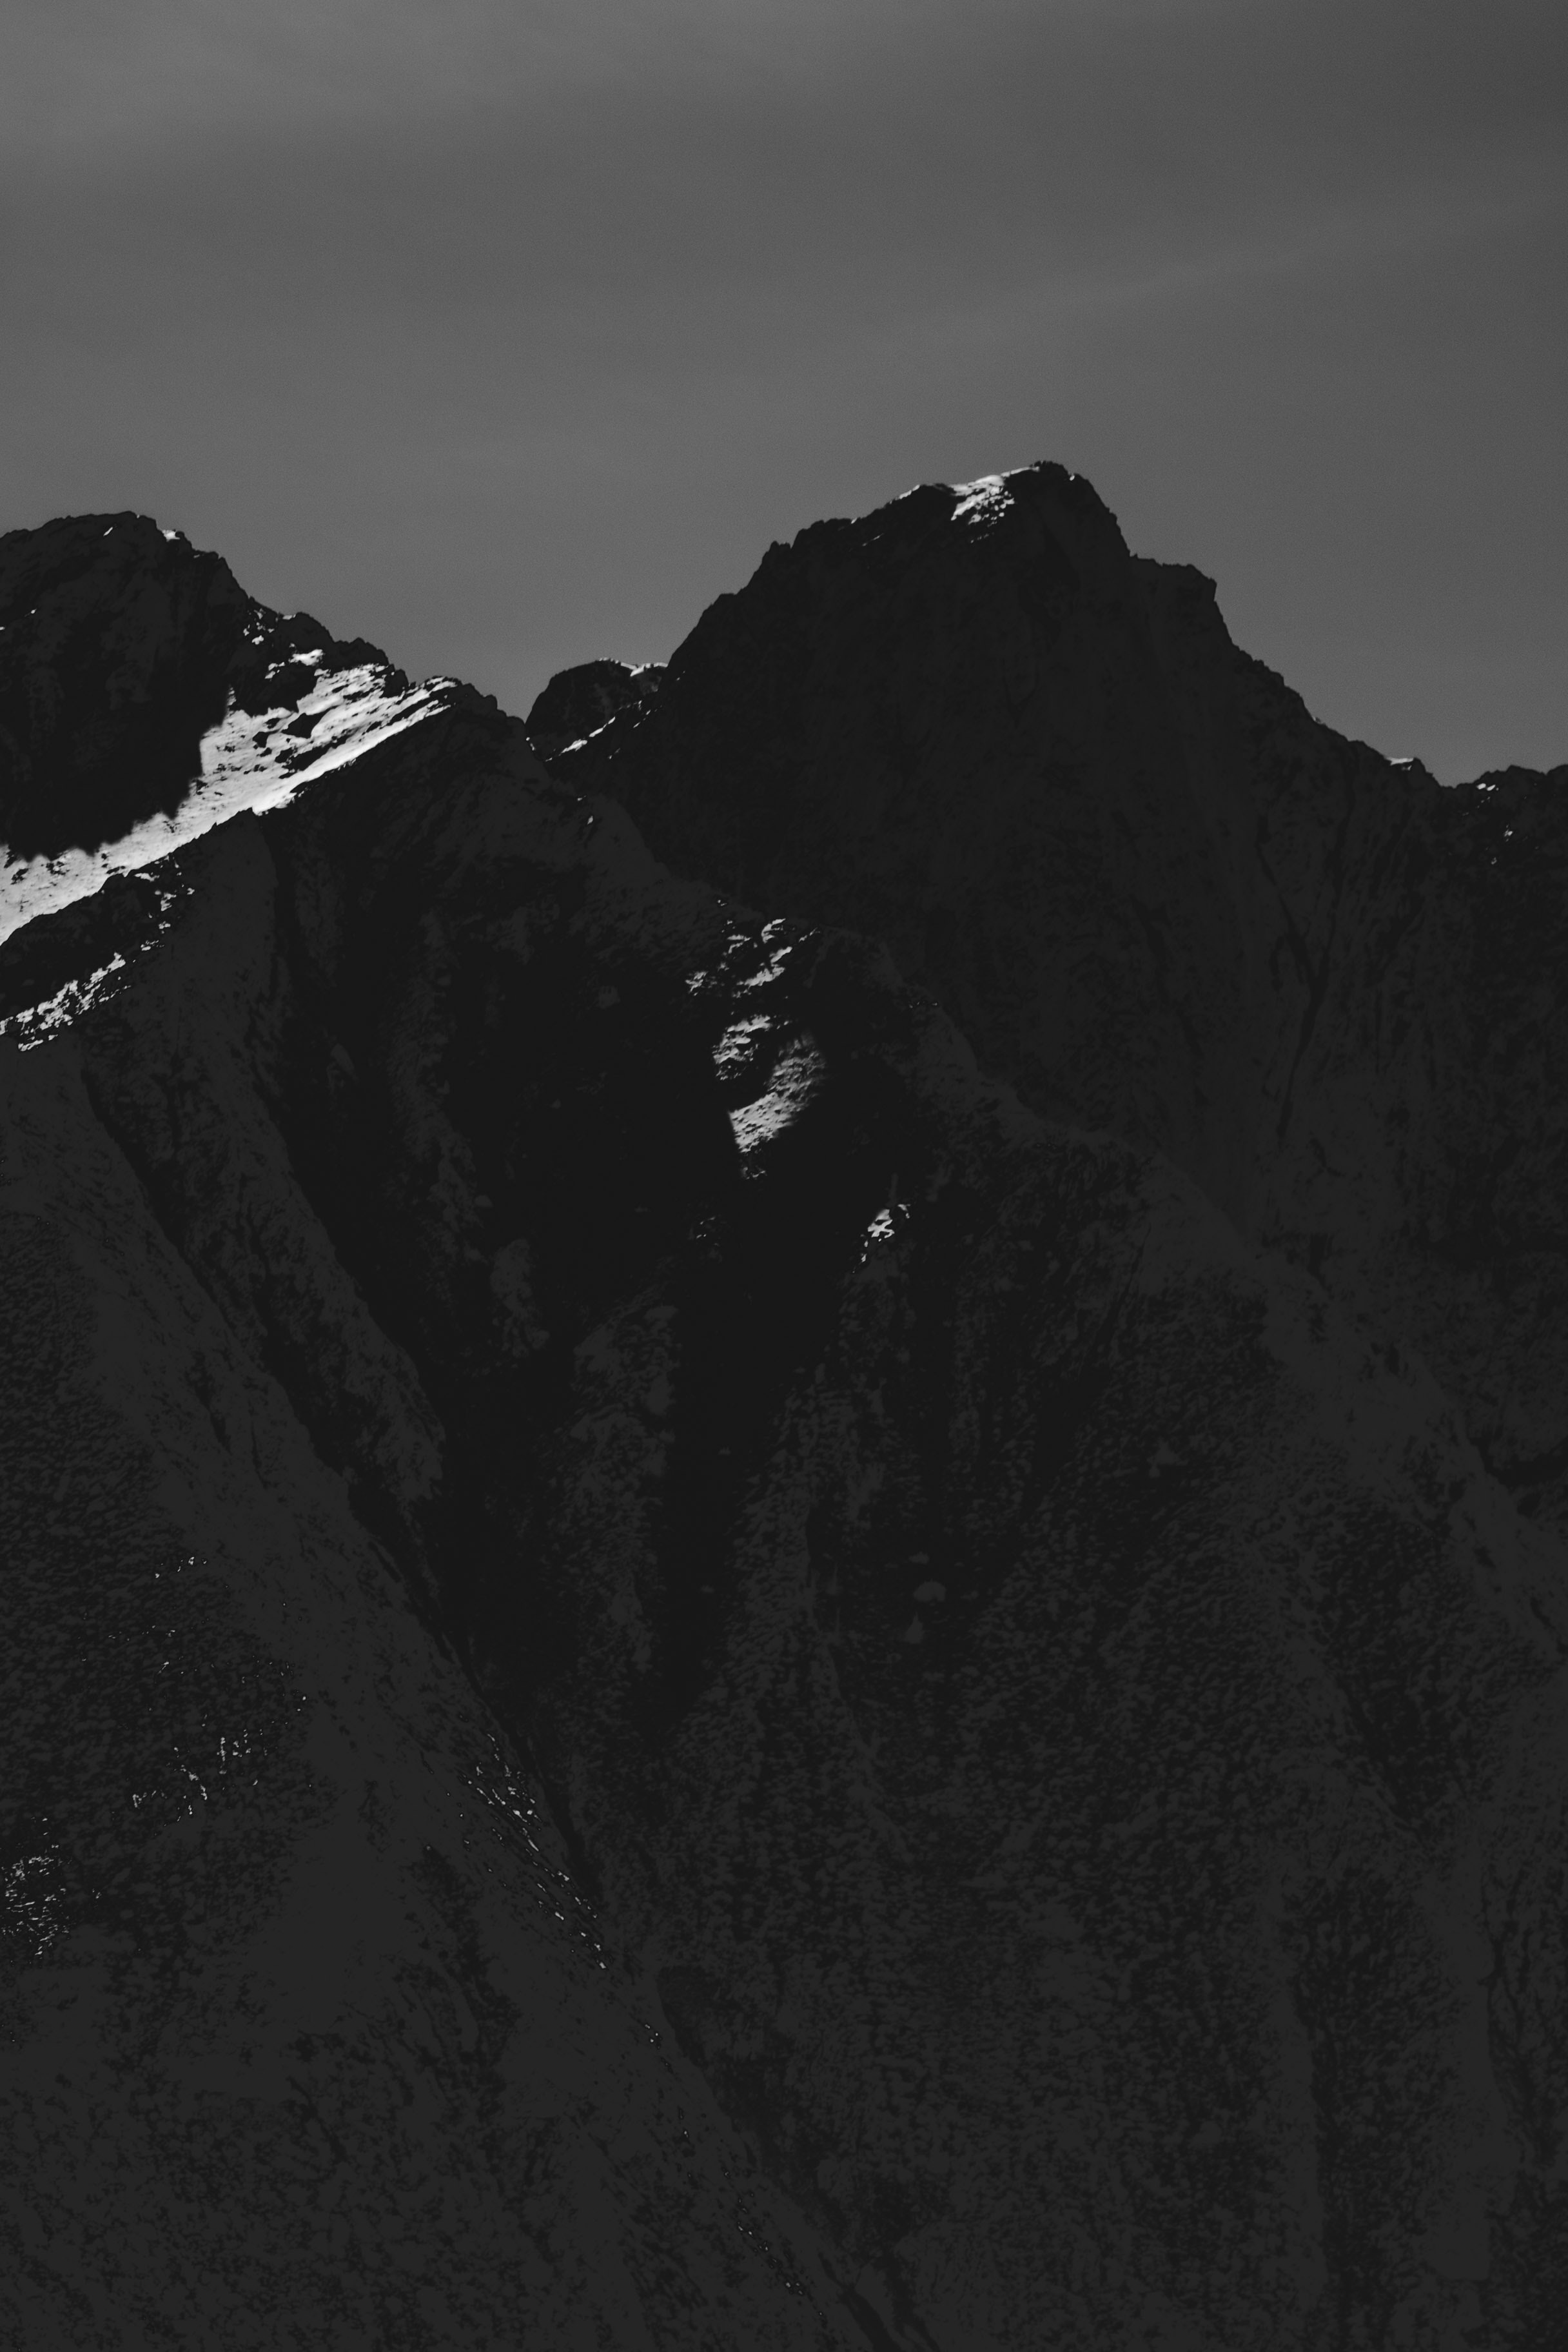 grayscale photo of snow mountain